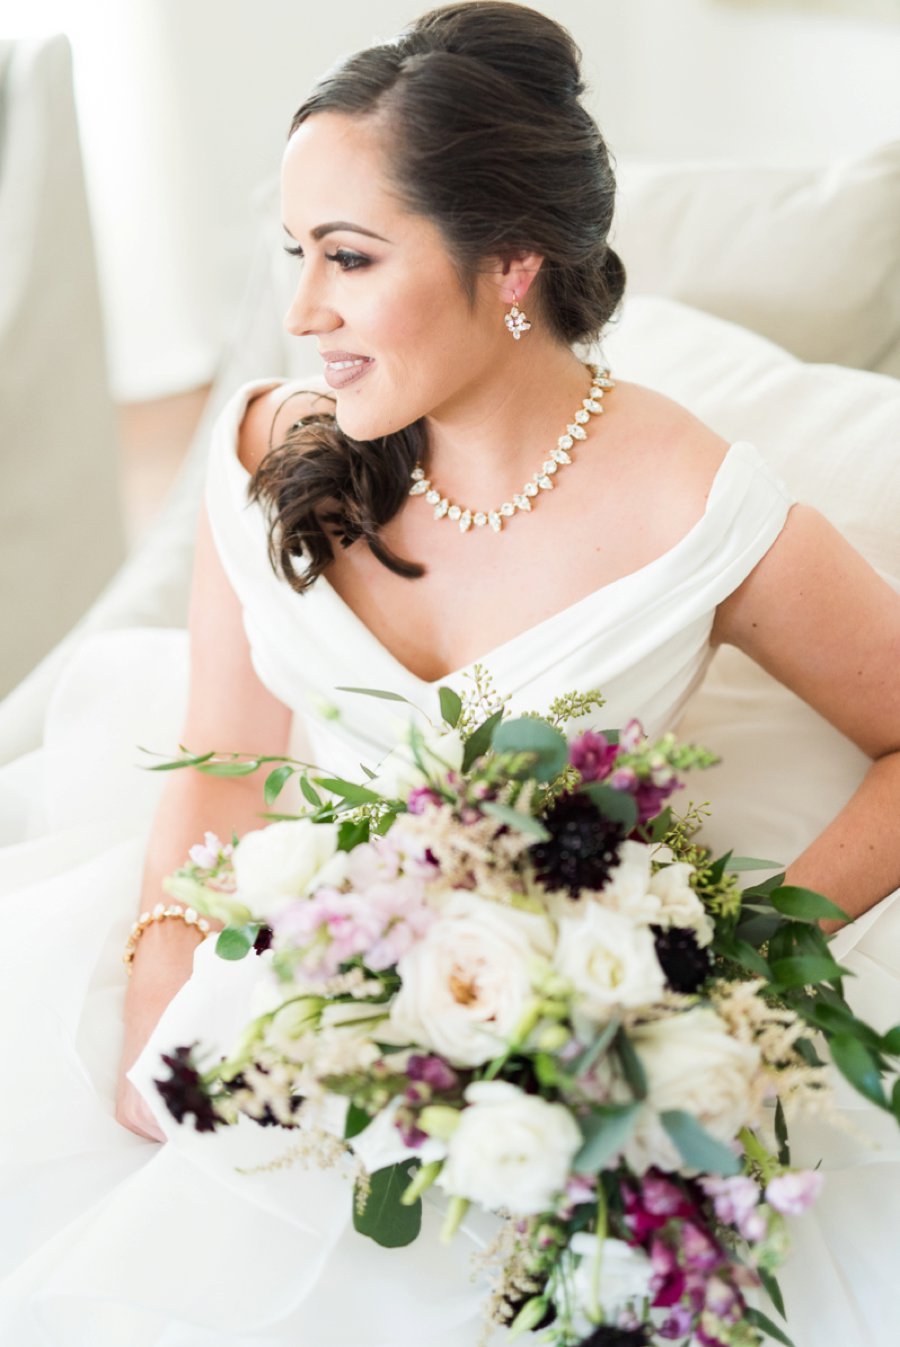 An Elegant Burgundy & Gold Tented Pensacola Wedding Day via TheELD.com